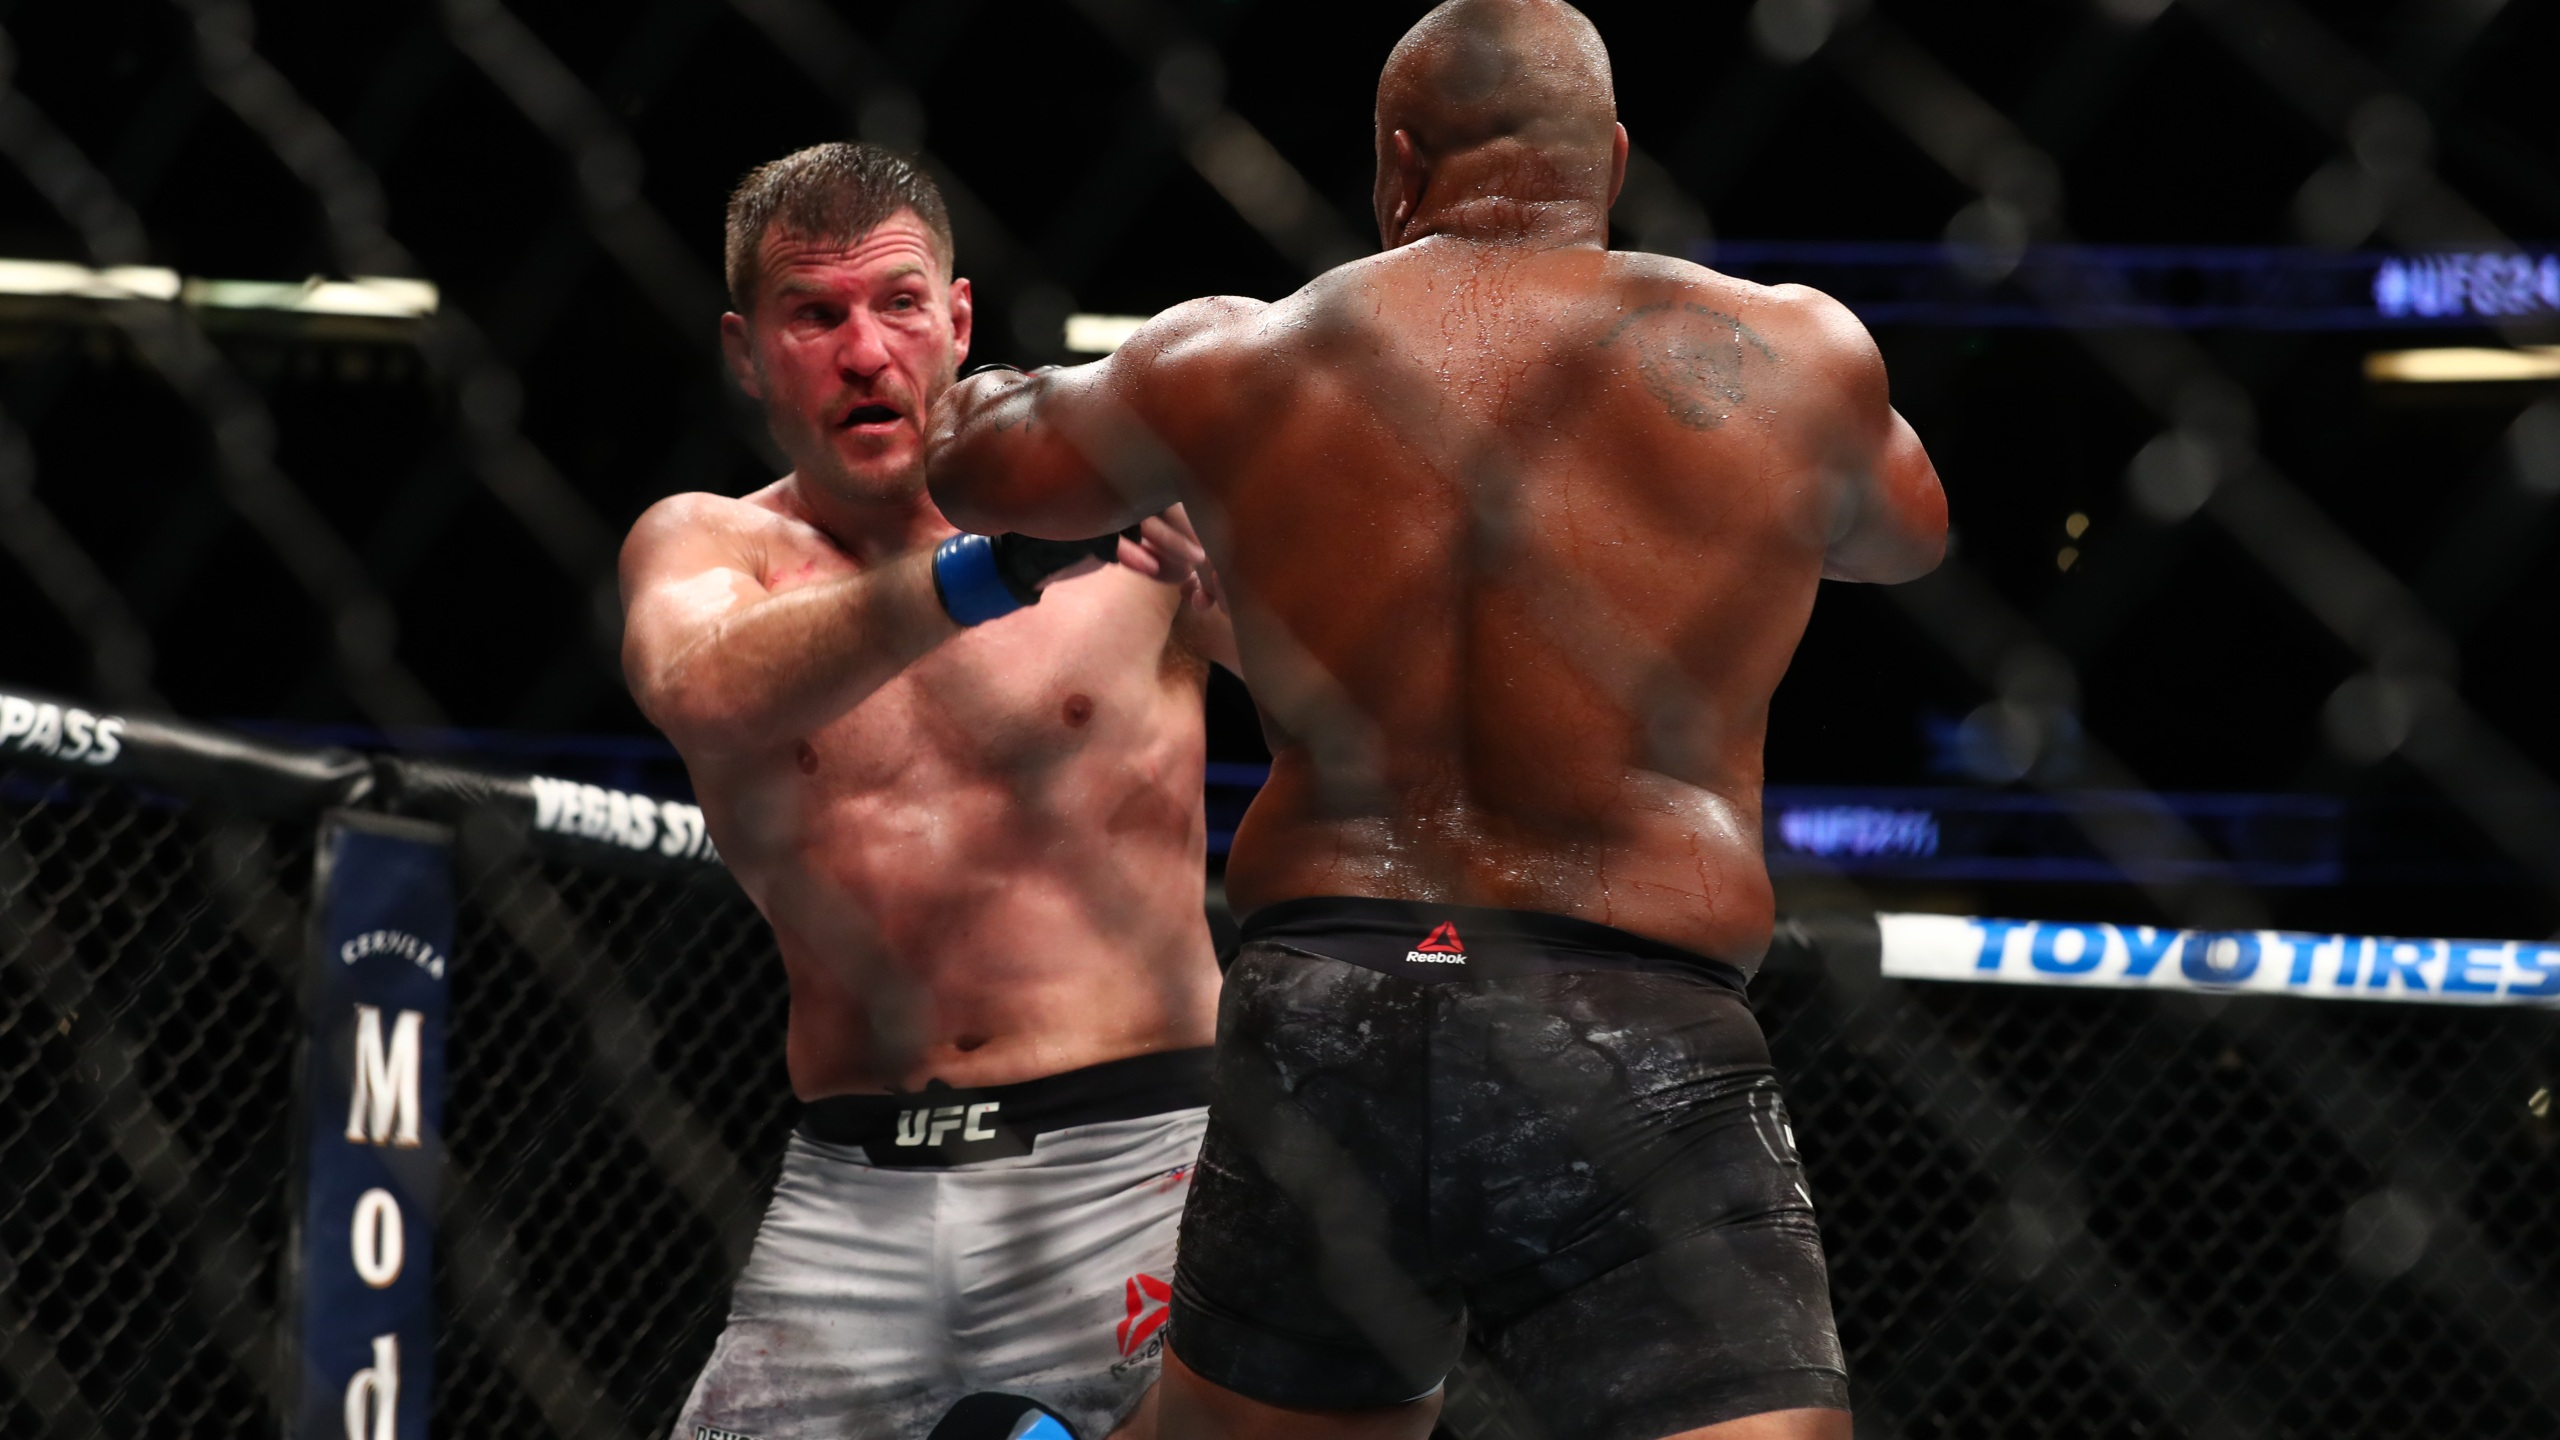 Stipe Miocic and Daniel Cormier